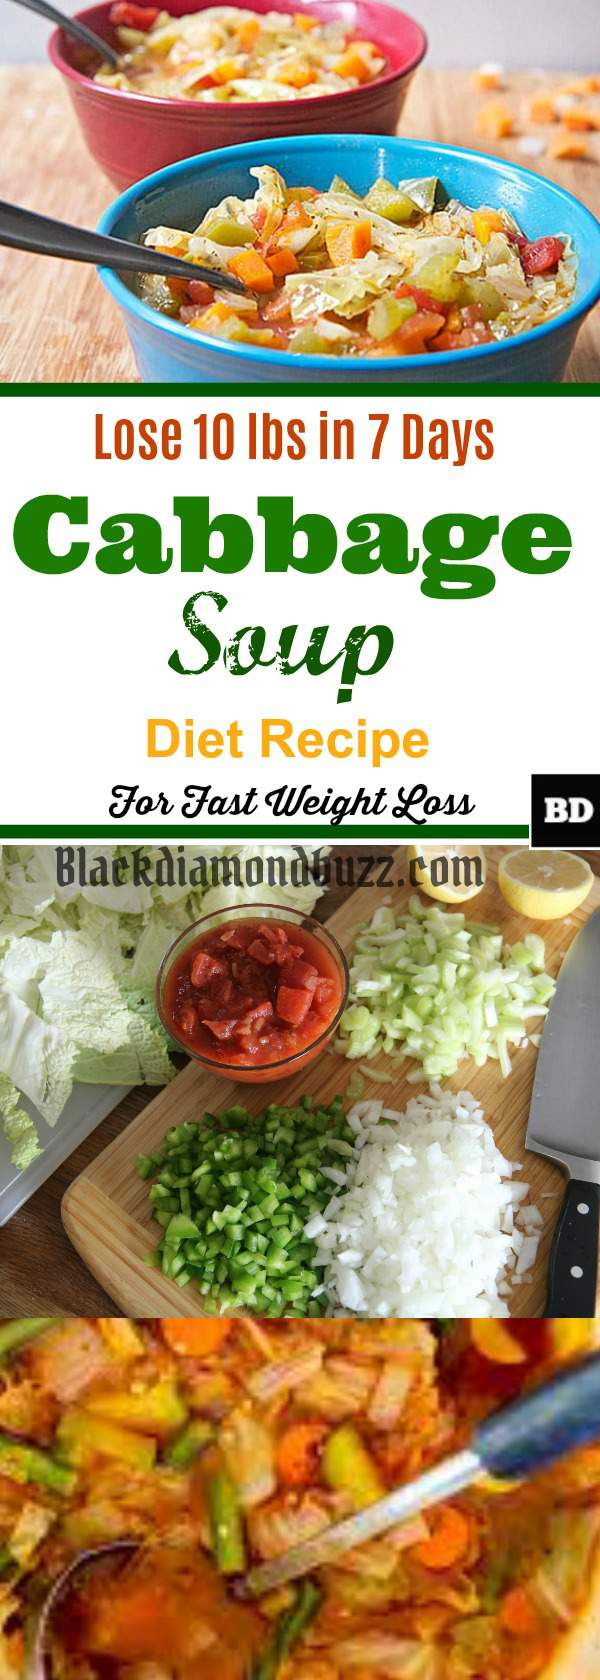 Best Cabbage Soup Diet Recipe For Weight Loss Lose 10 Pounds In 7 Days